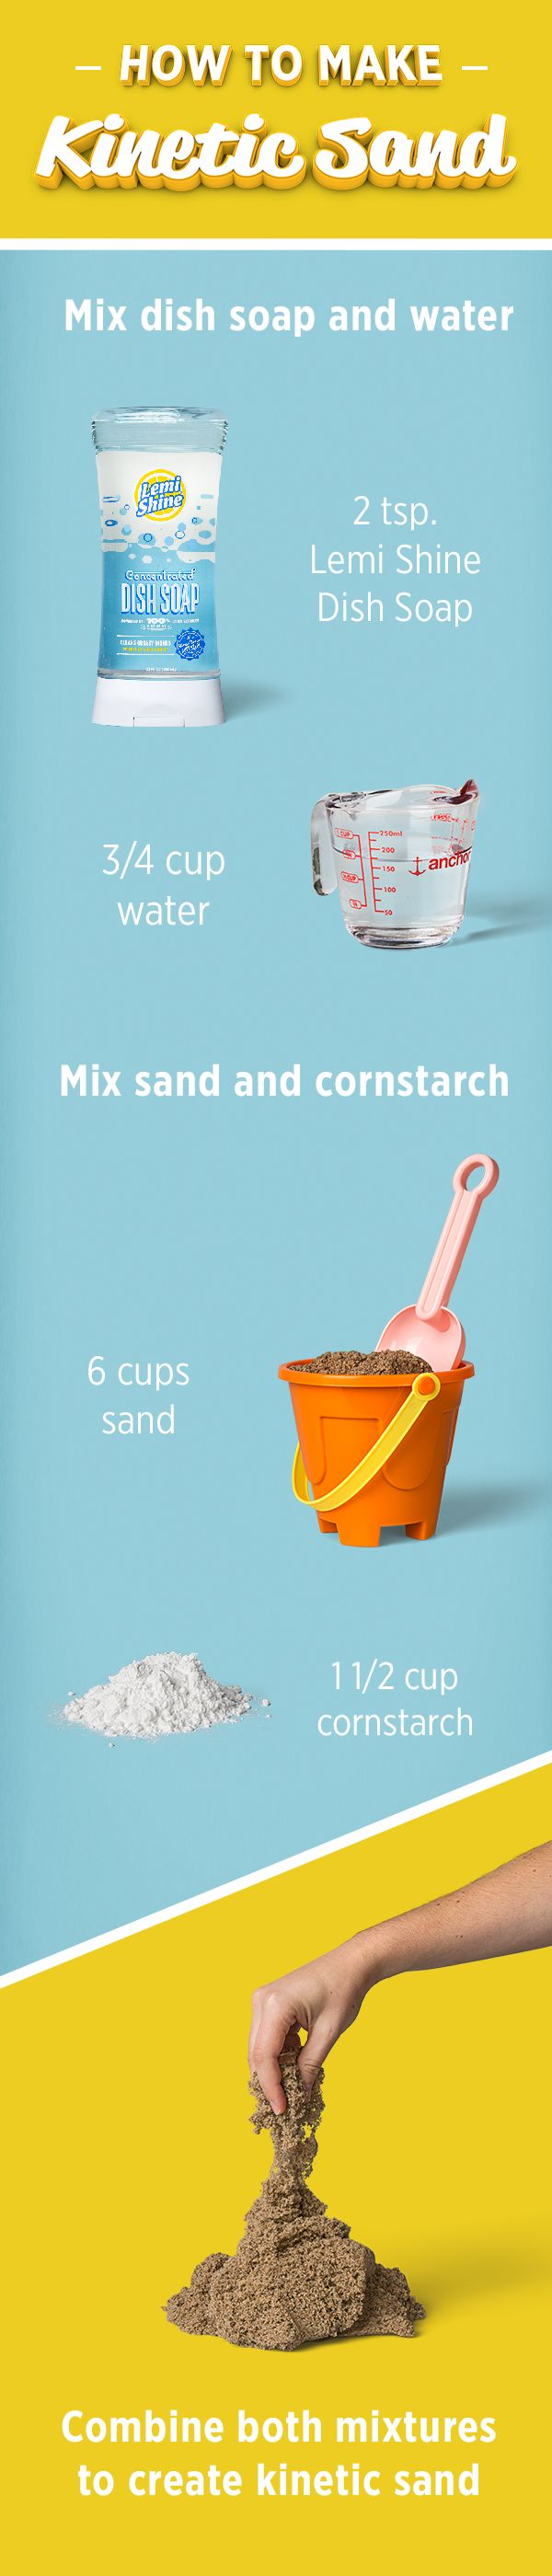 Can't make it to the beach or just don't want to deal with sandy cleanup? Try kinetic sand. It'll keep the kids entertained and your home mess-free.